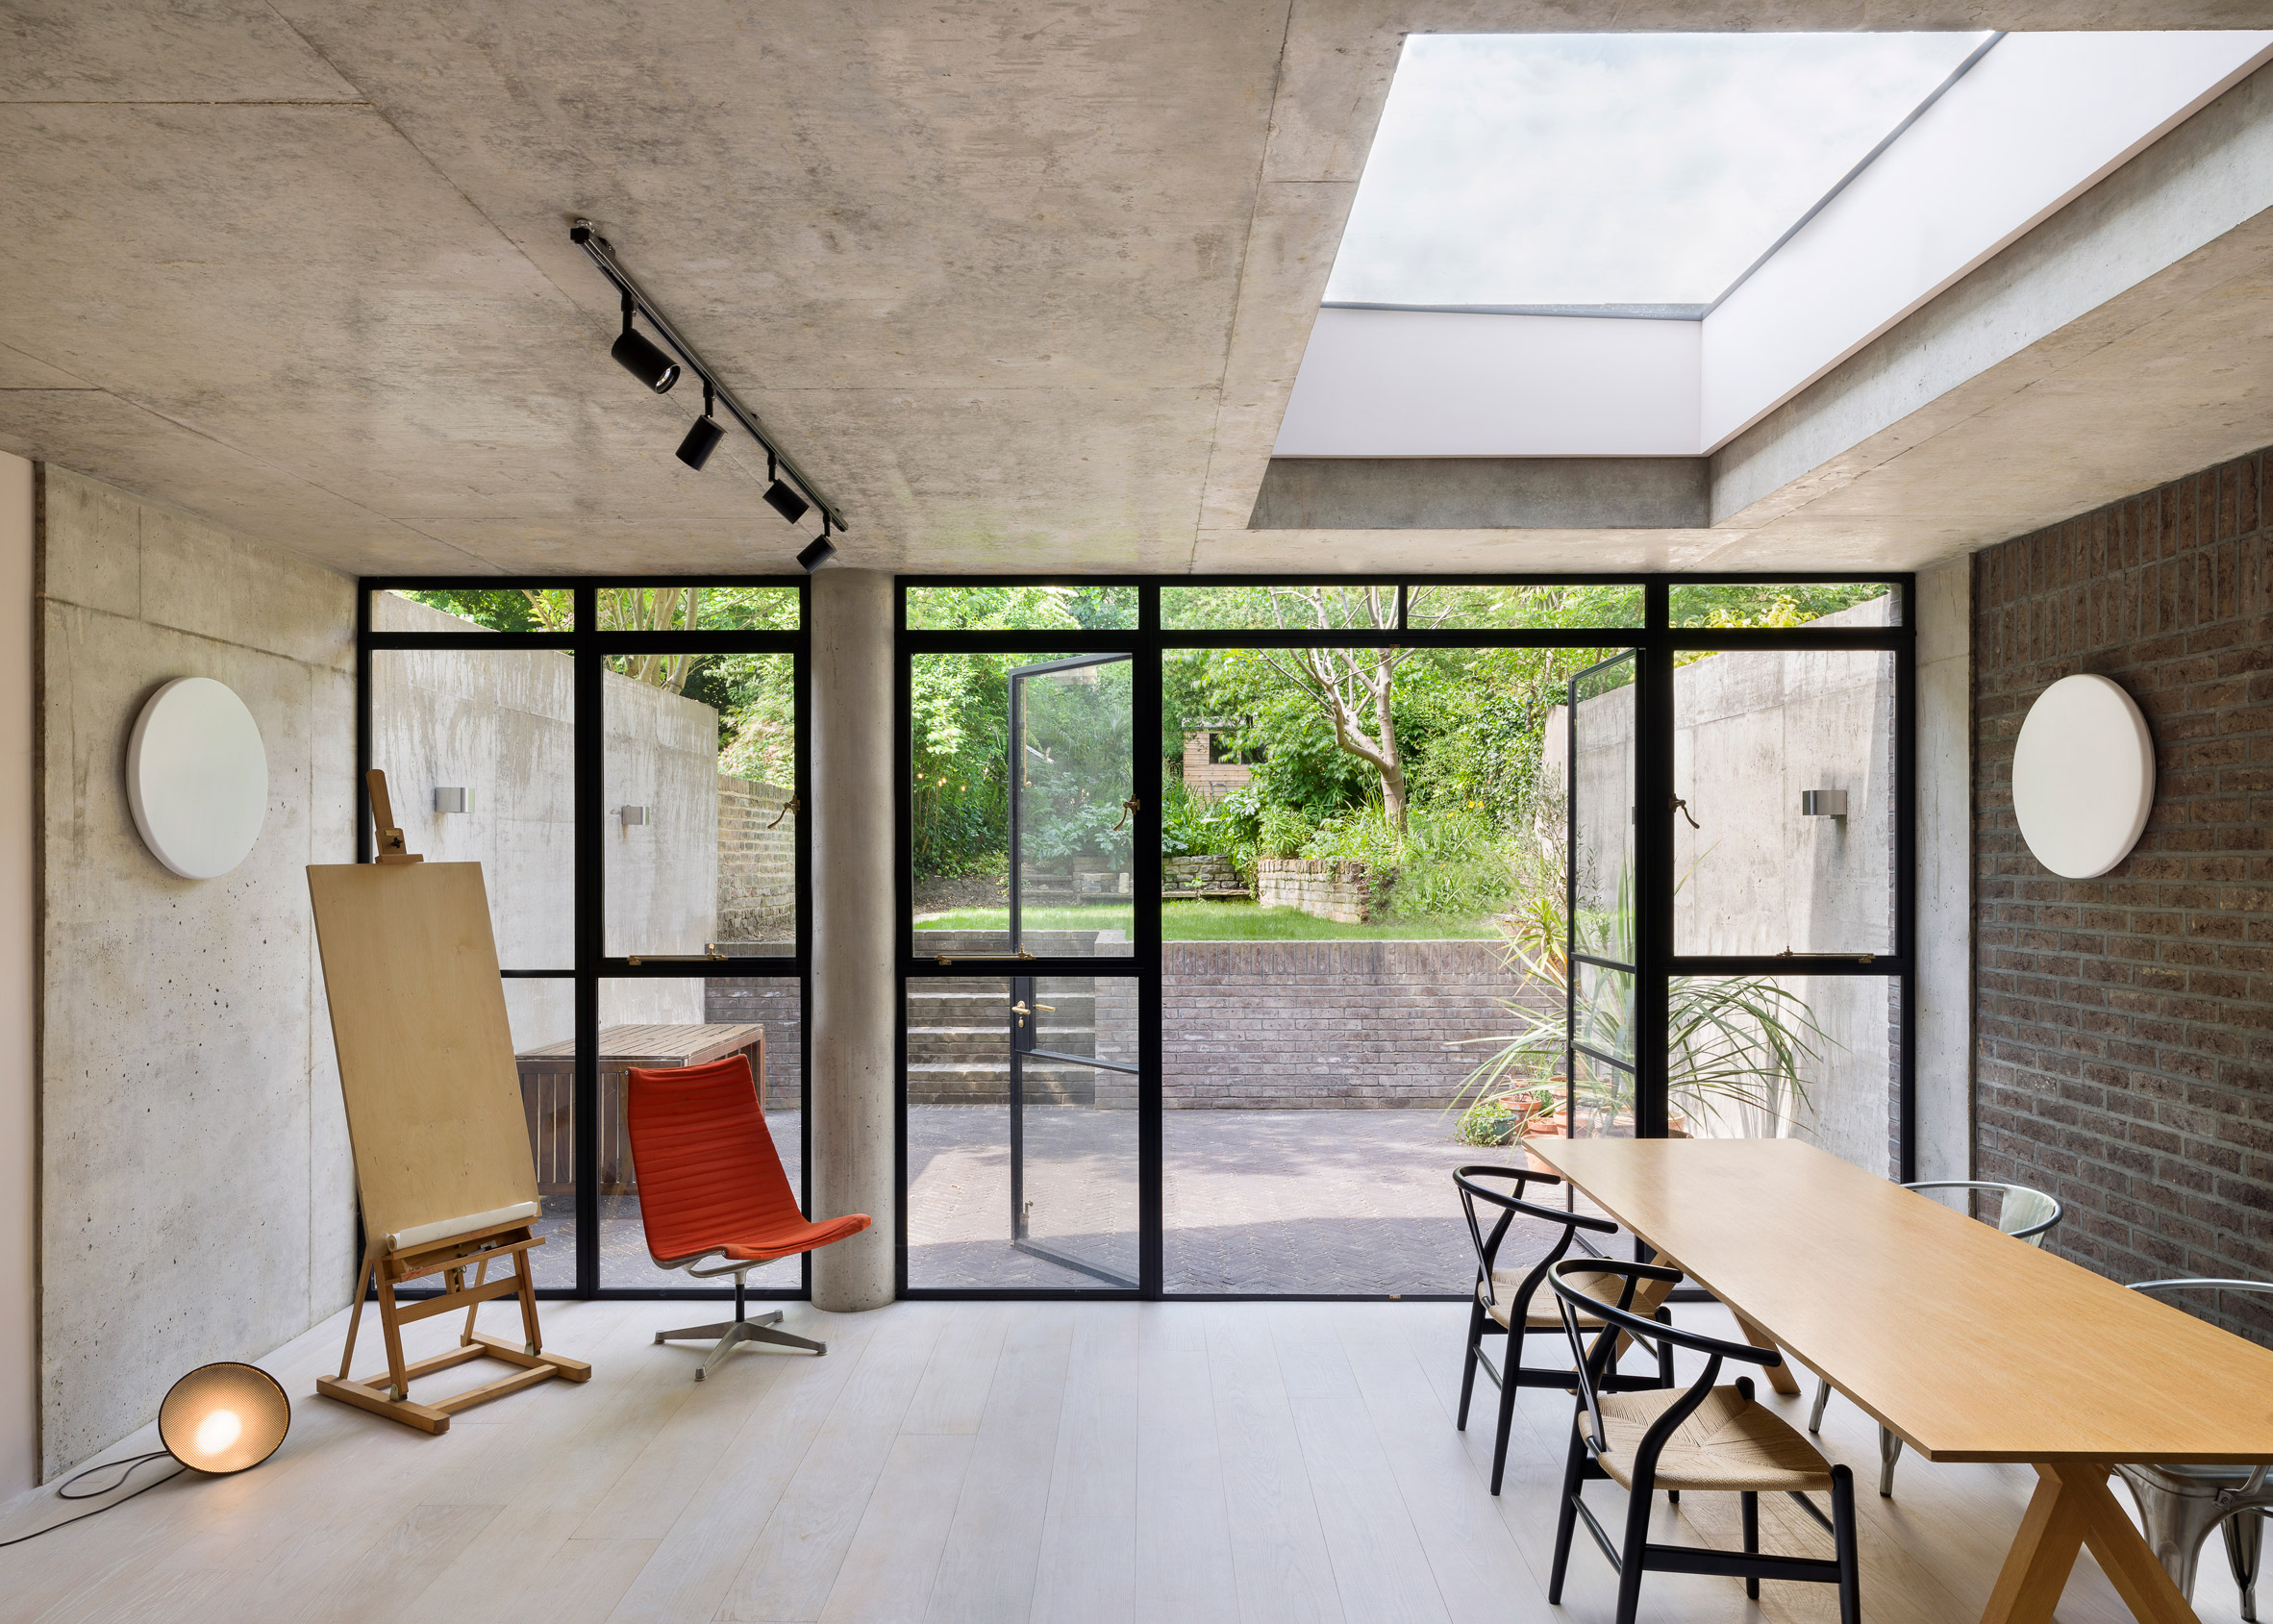 Lauriston Road, Hackney, by Gundry and Ducker